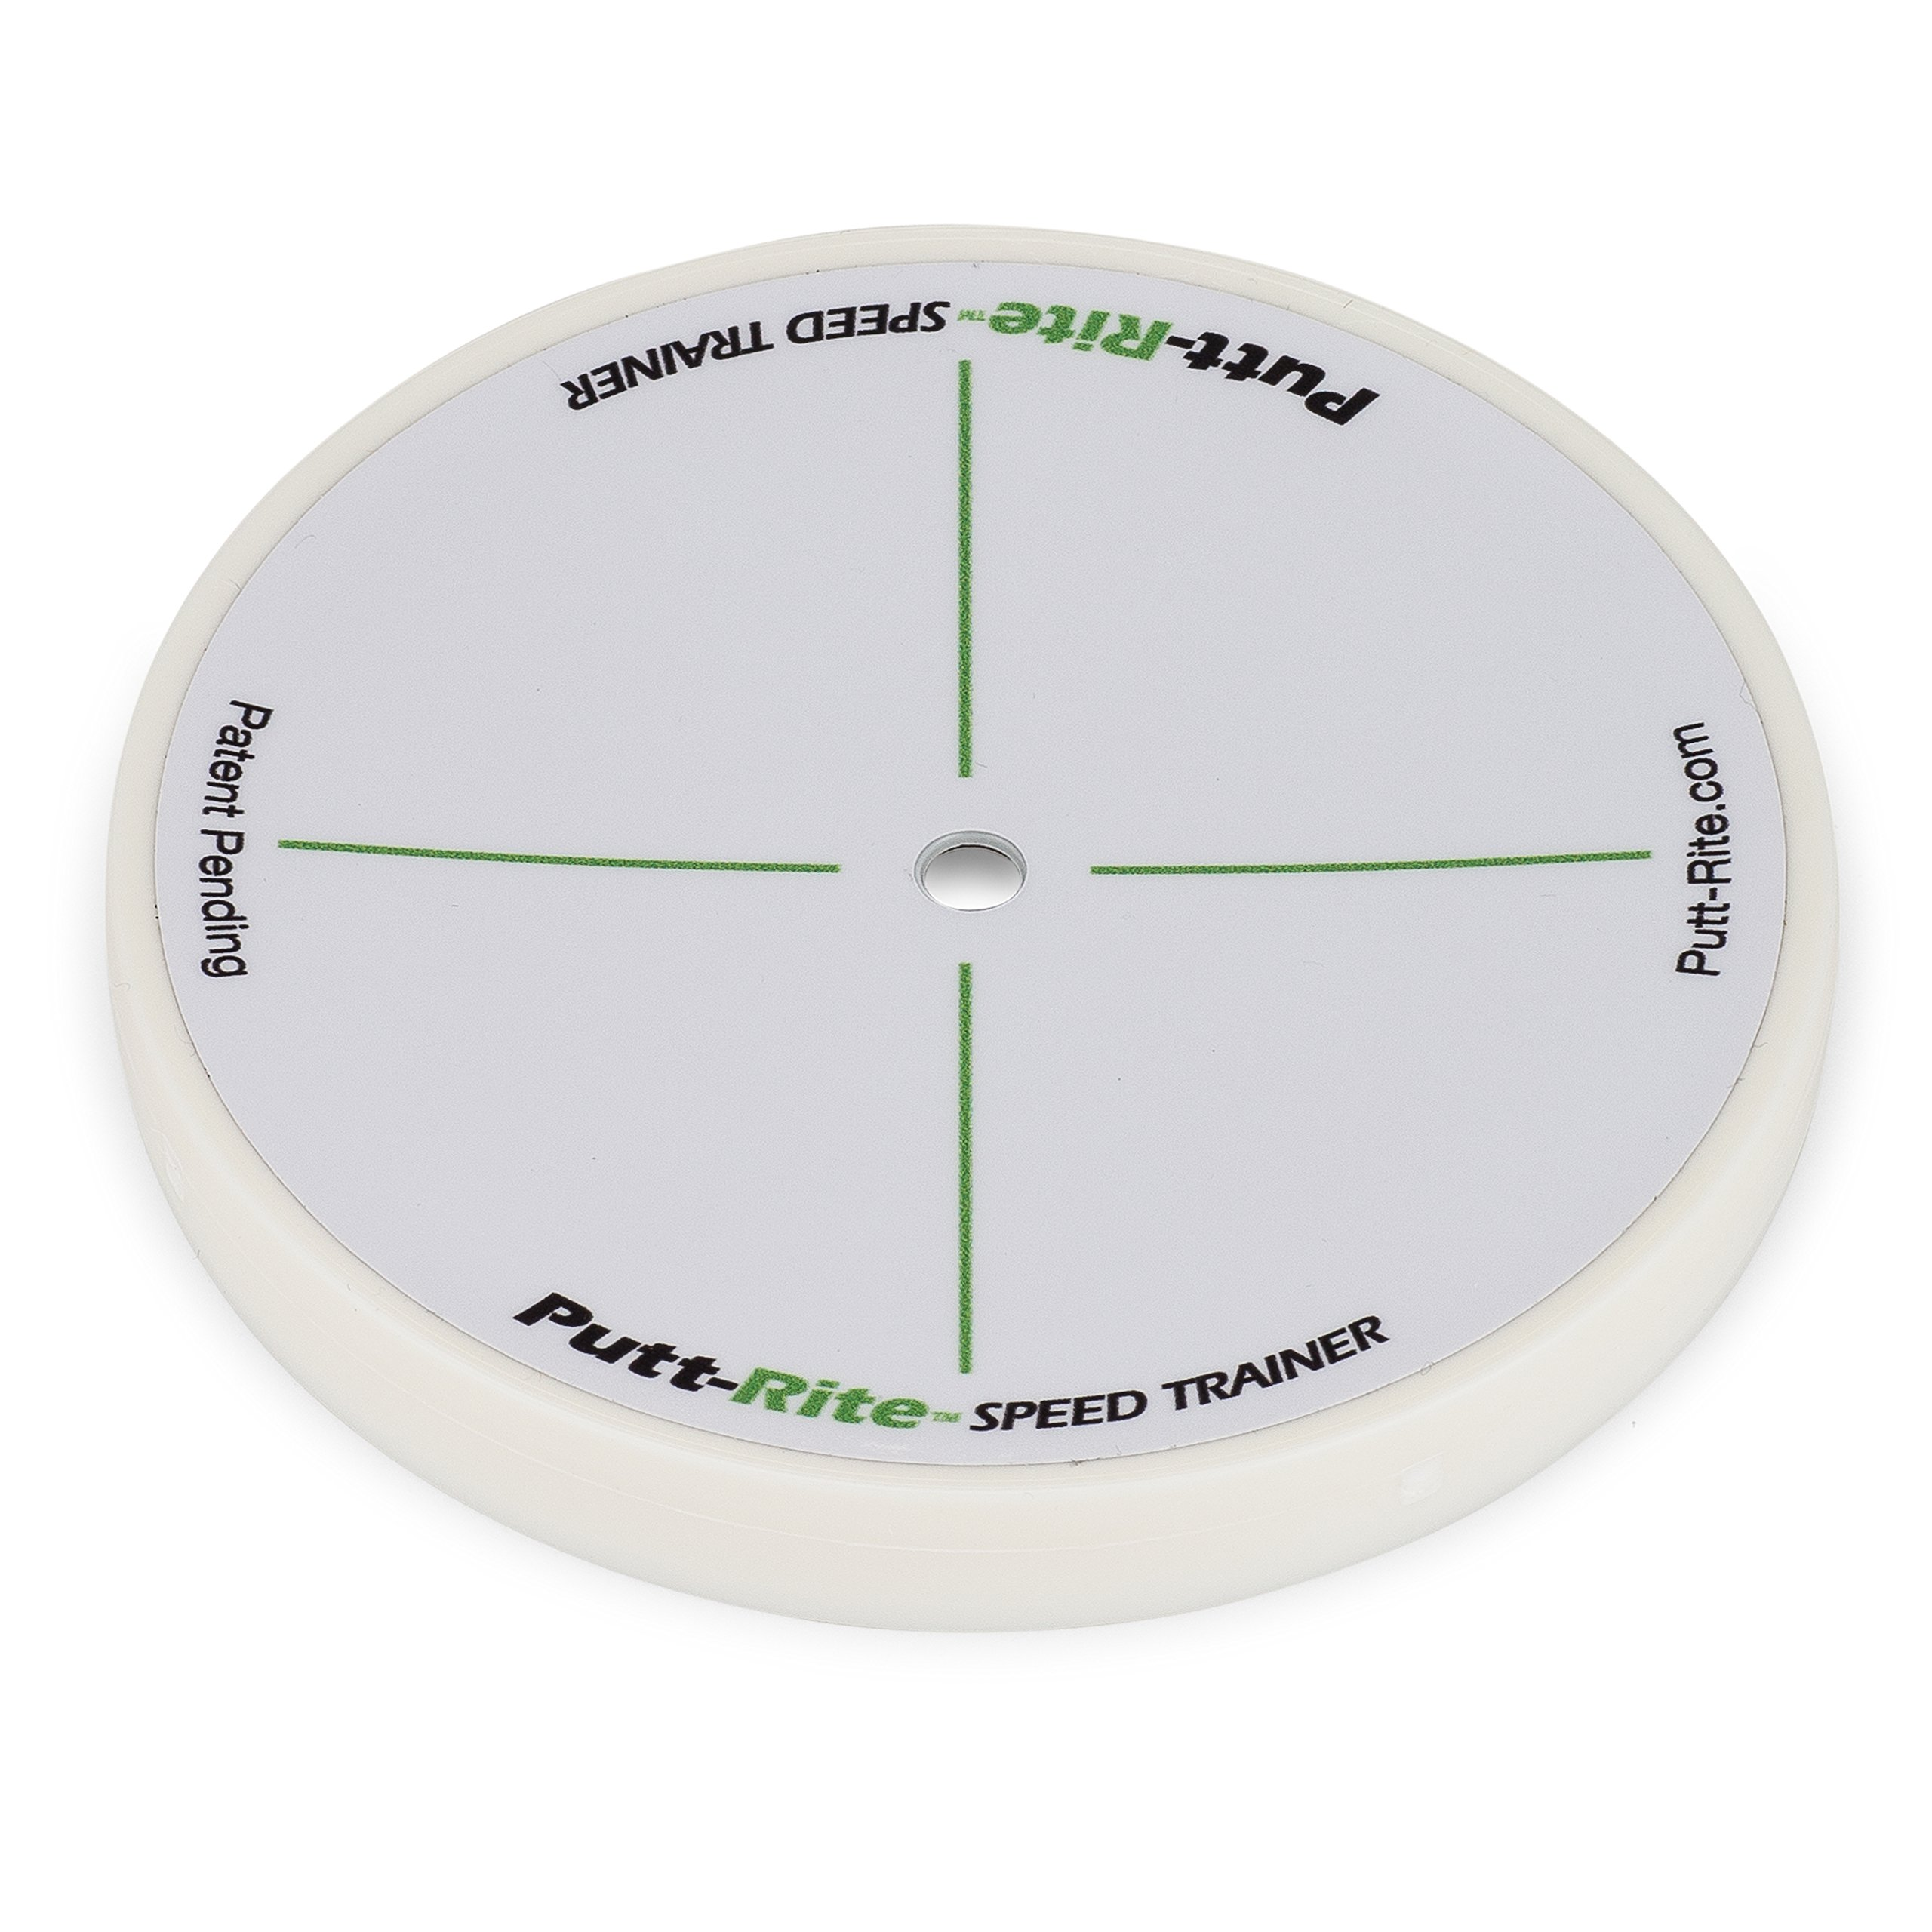 Putt-Rite Speed Trainer - Putting Training Aid to Perfect Putting Speed by Putt-Rite (Image #3)